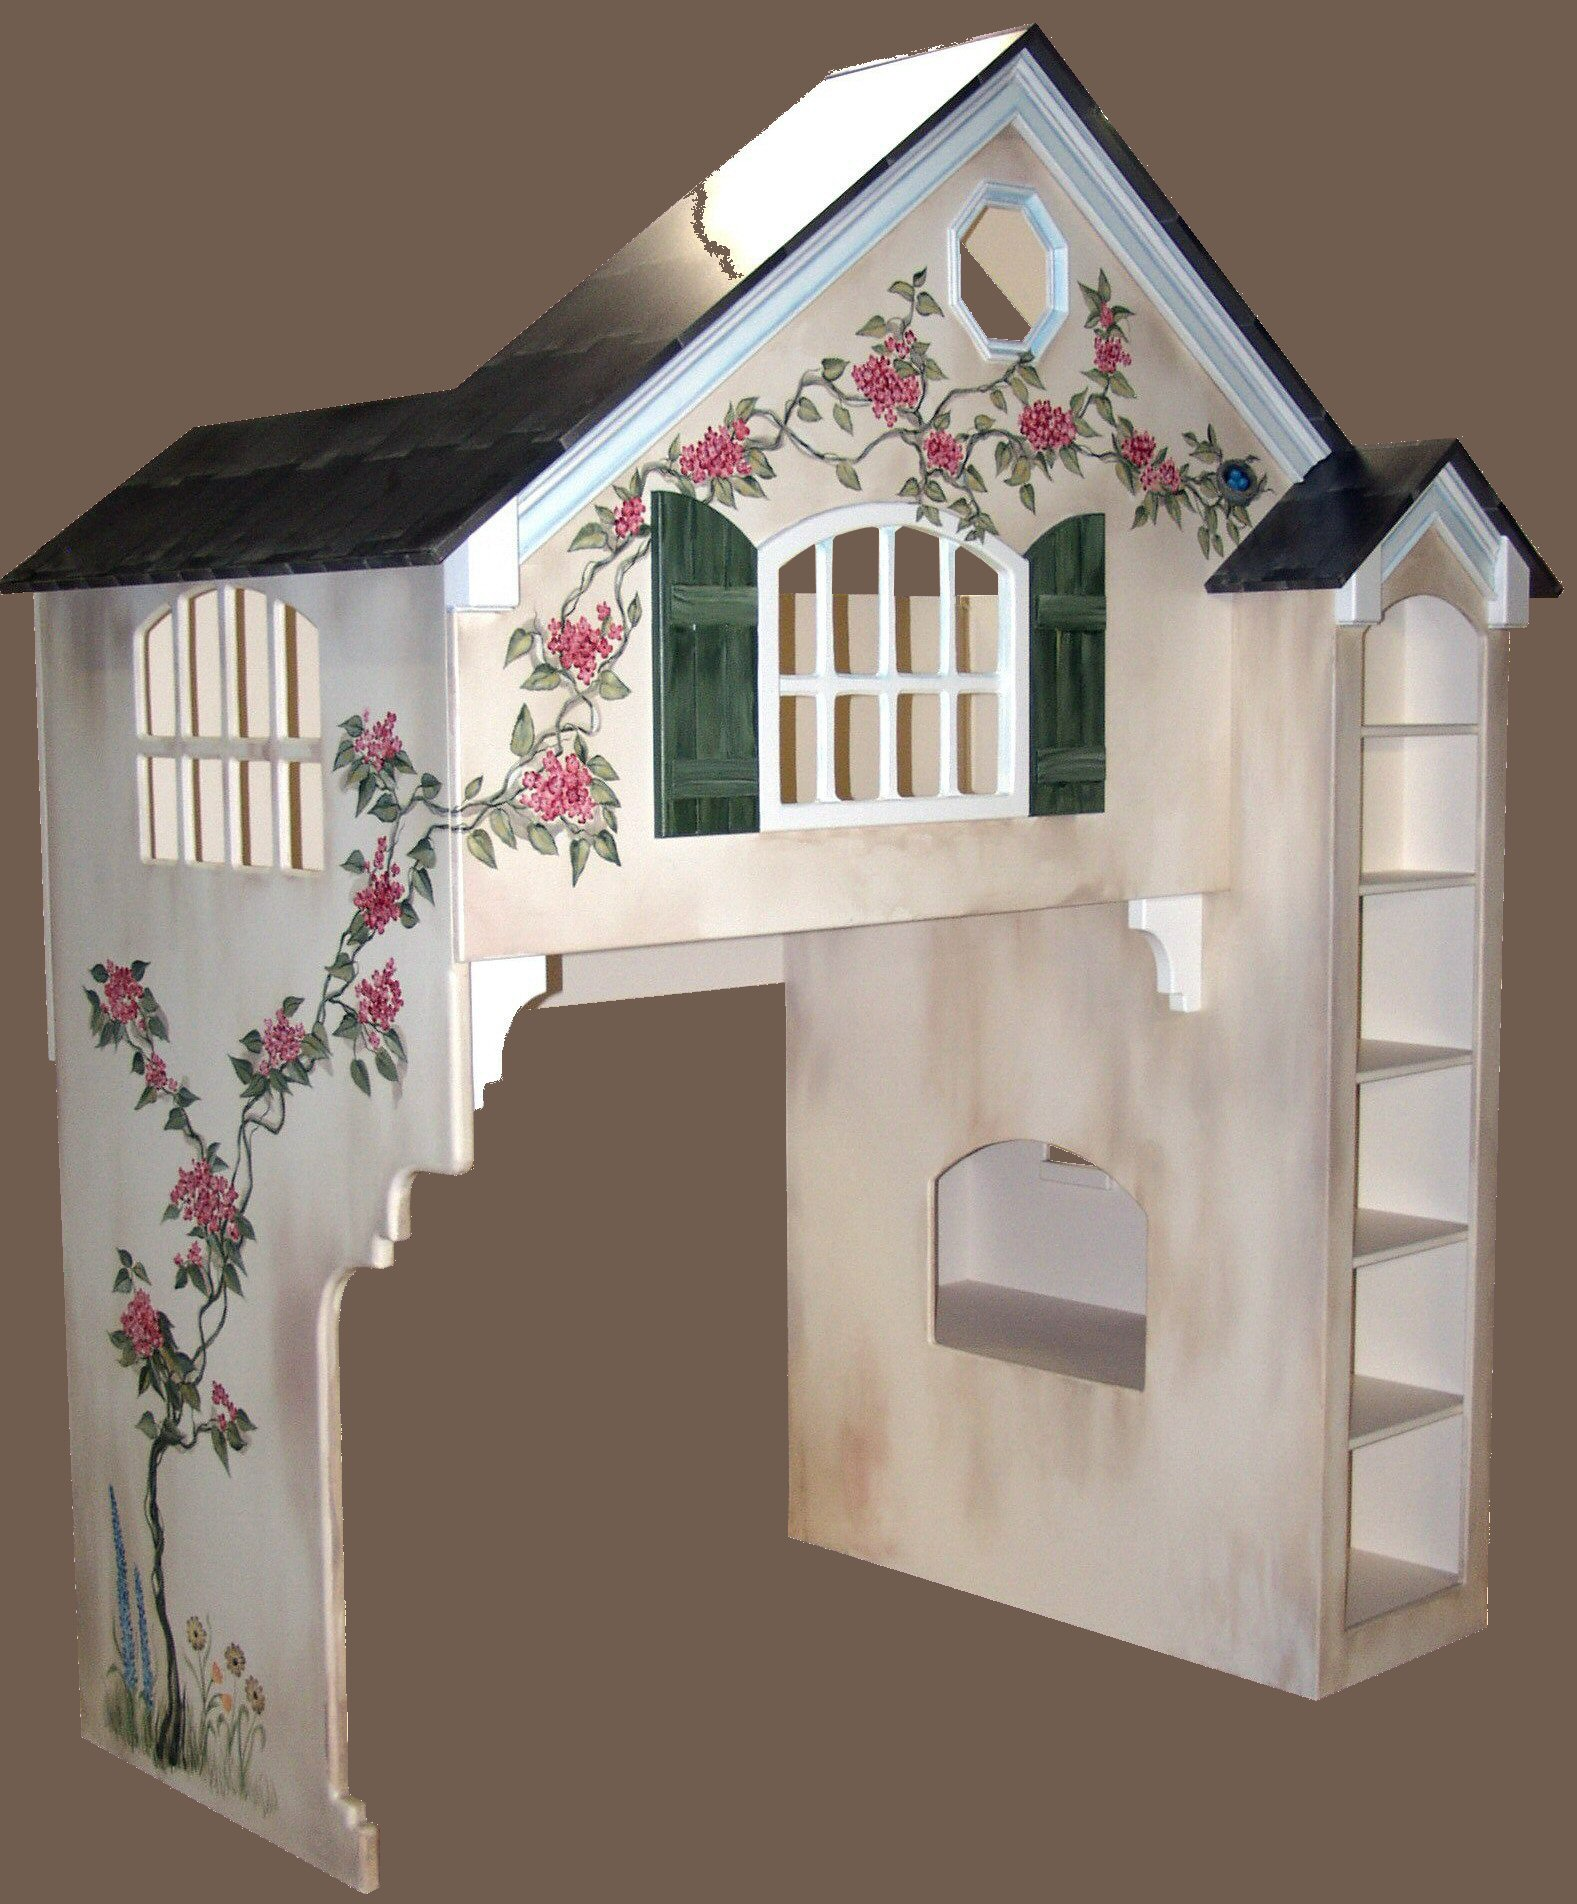 ... Bed w/Green Shutters ... - Blueprints For The Dollhouse Bunk Bed (Twin